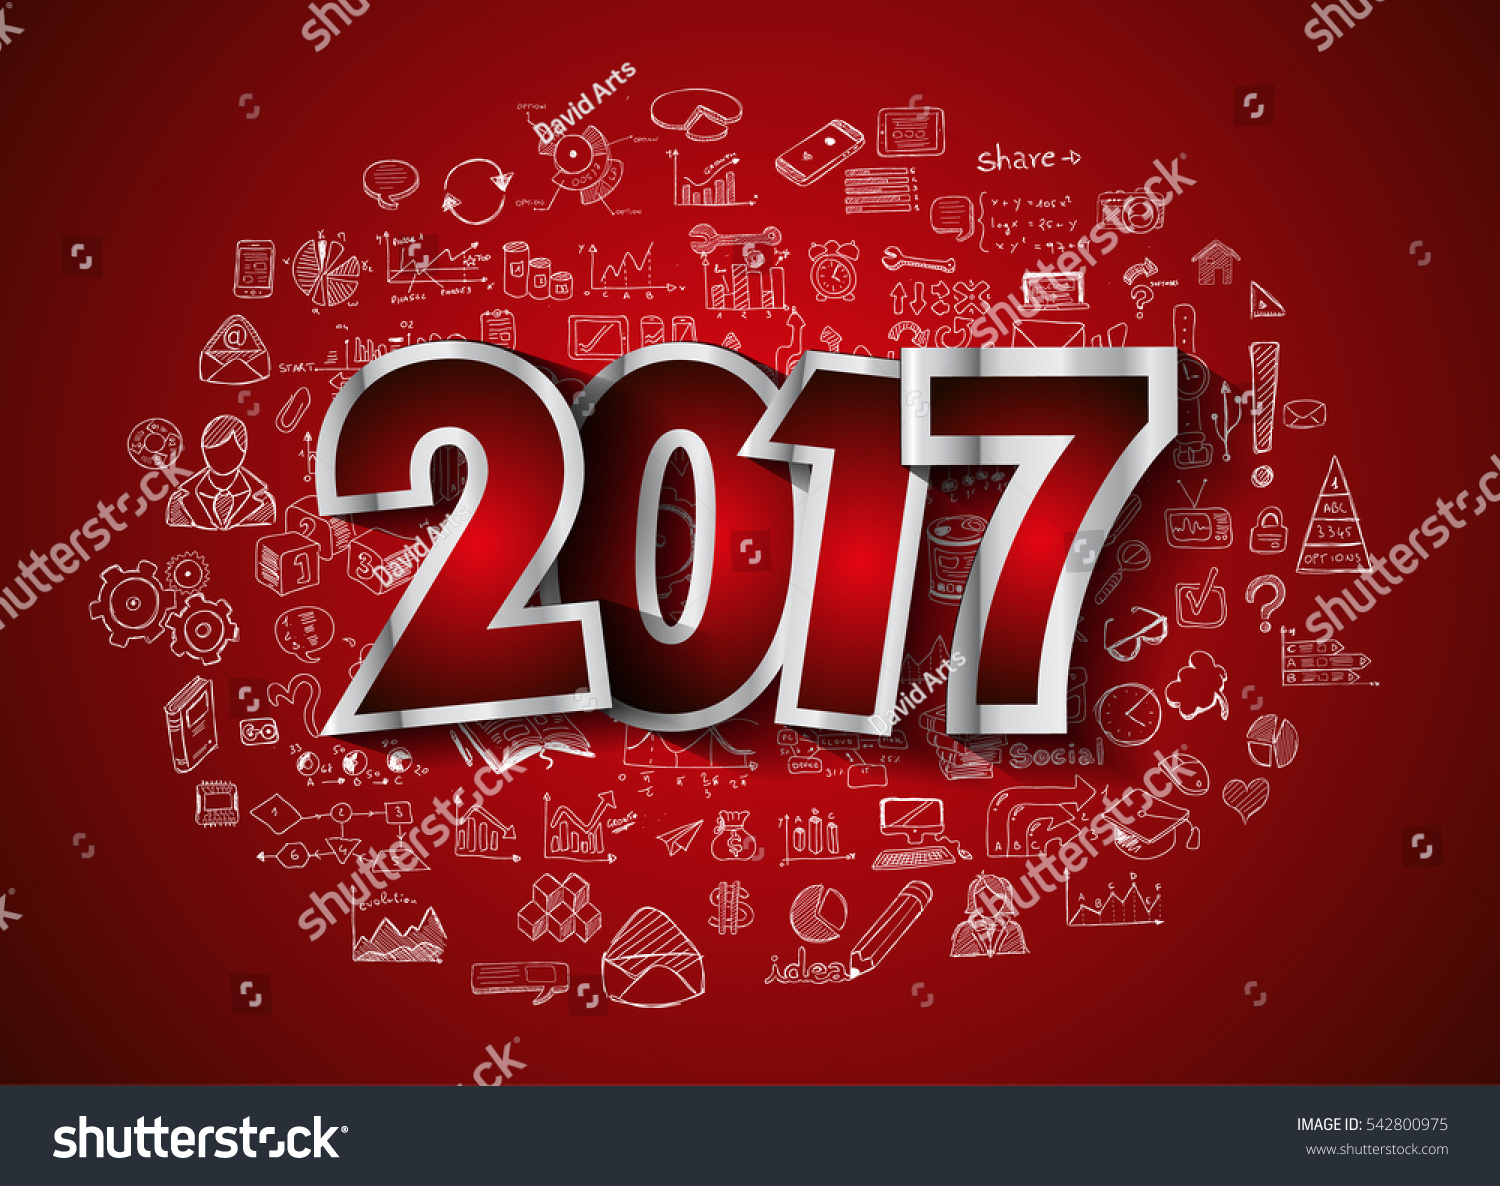 2017 new year infographic business plan stock vector 542800975 2017 new year infographic and business plan background for your flyers and hand drawn business and magicingreecefo Image collections